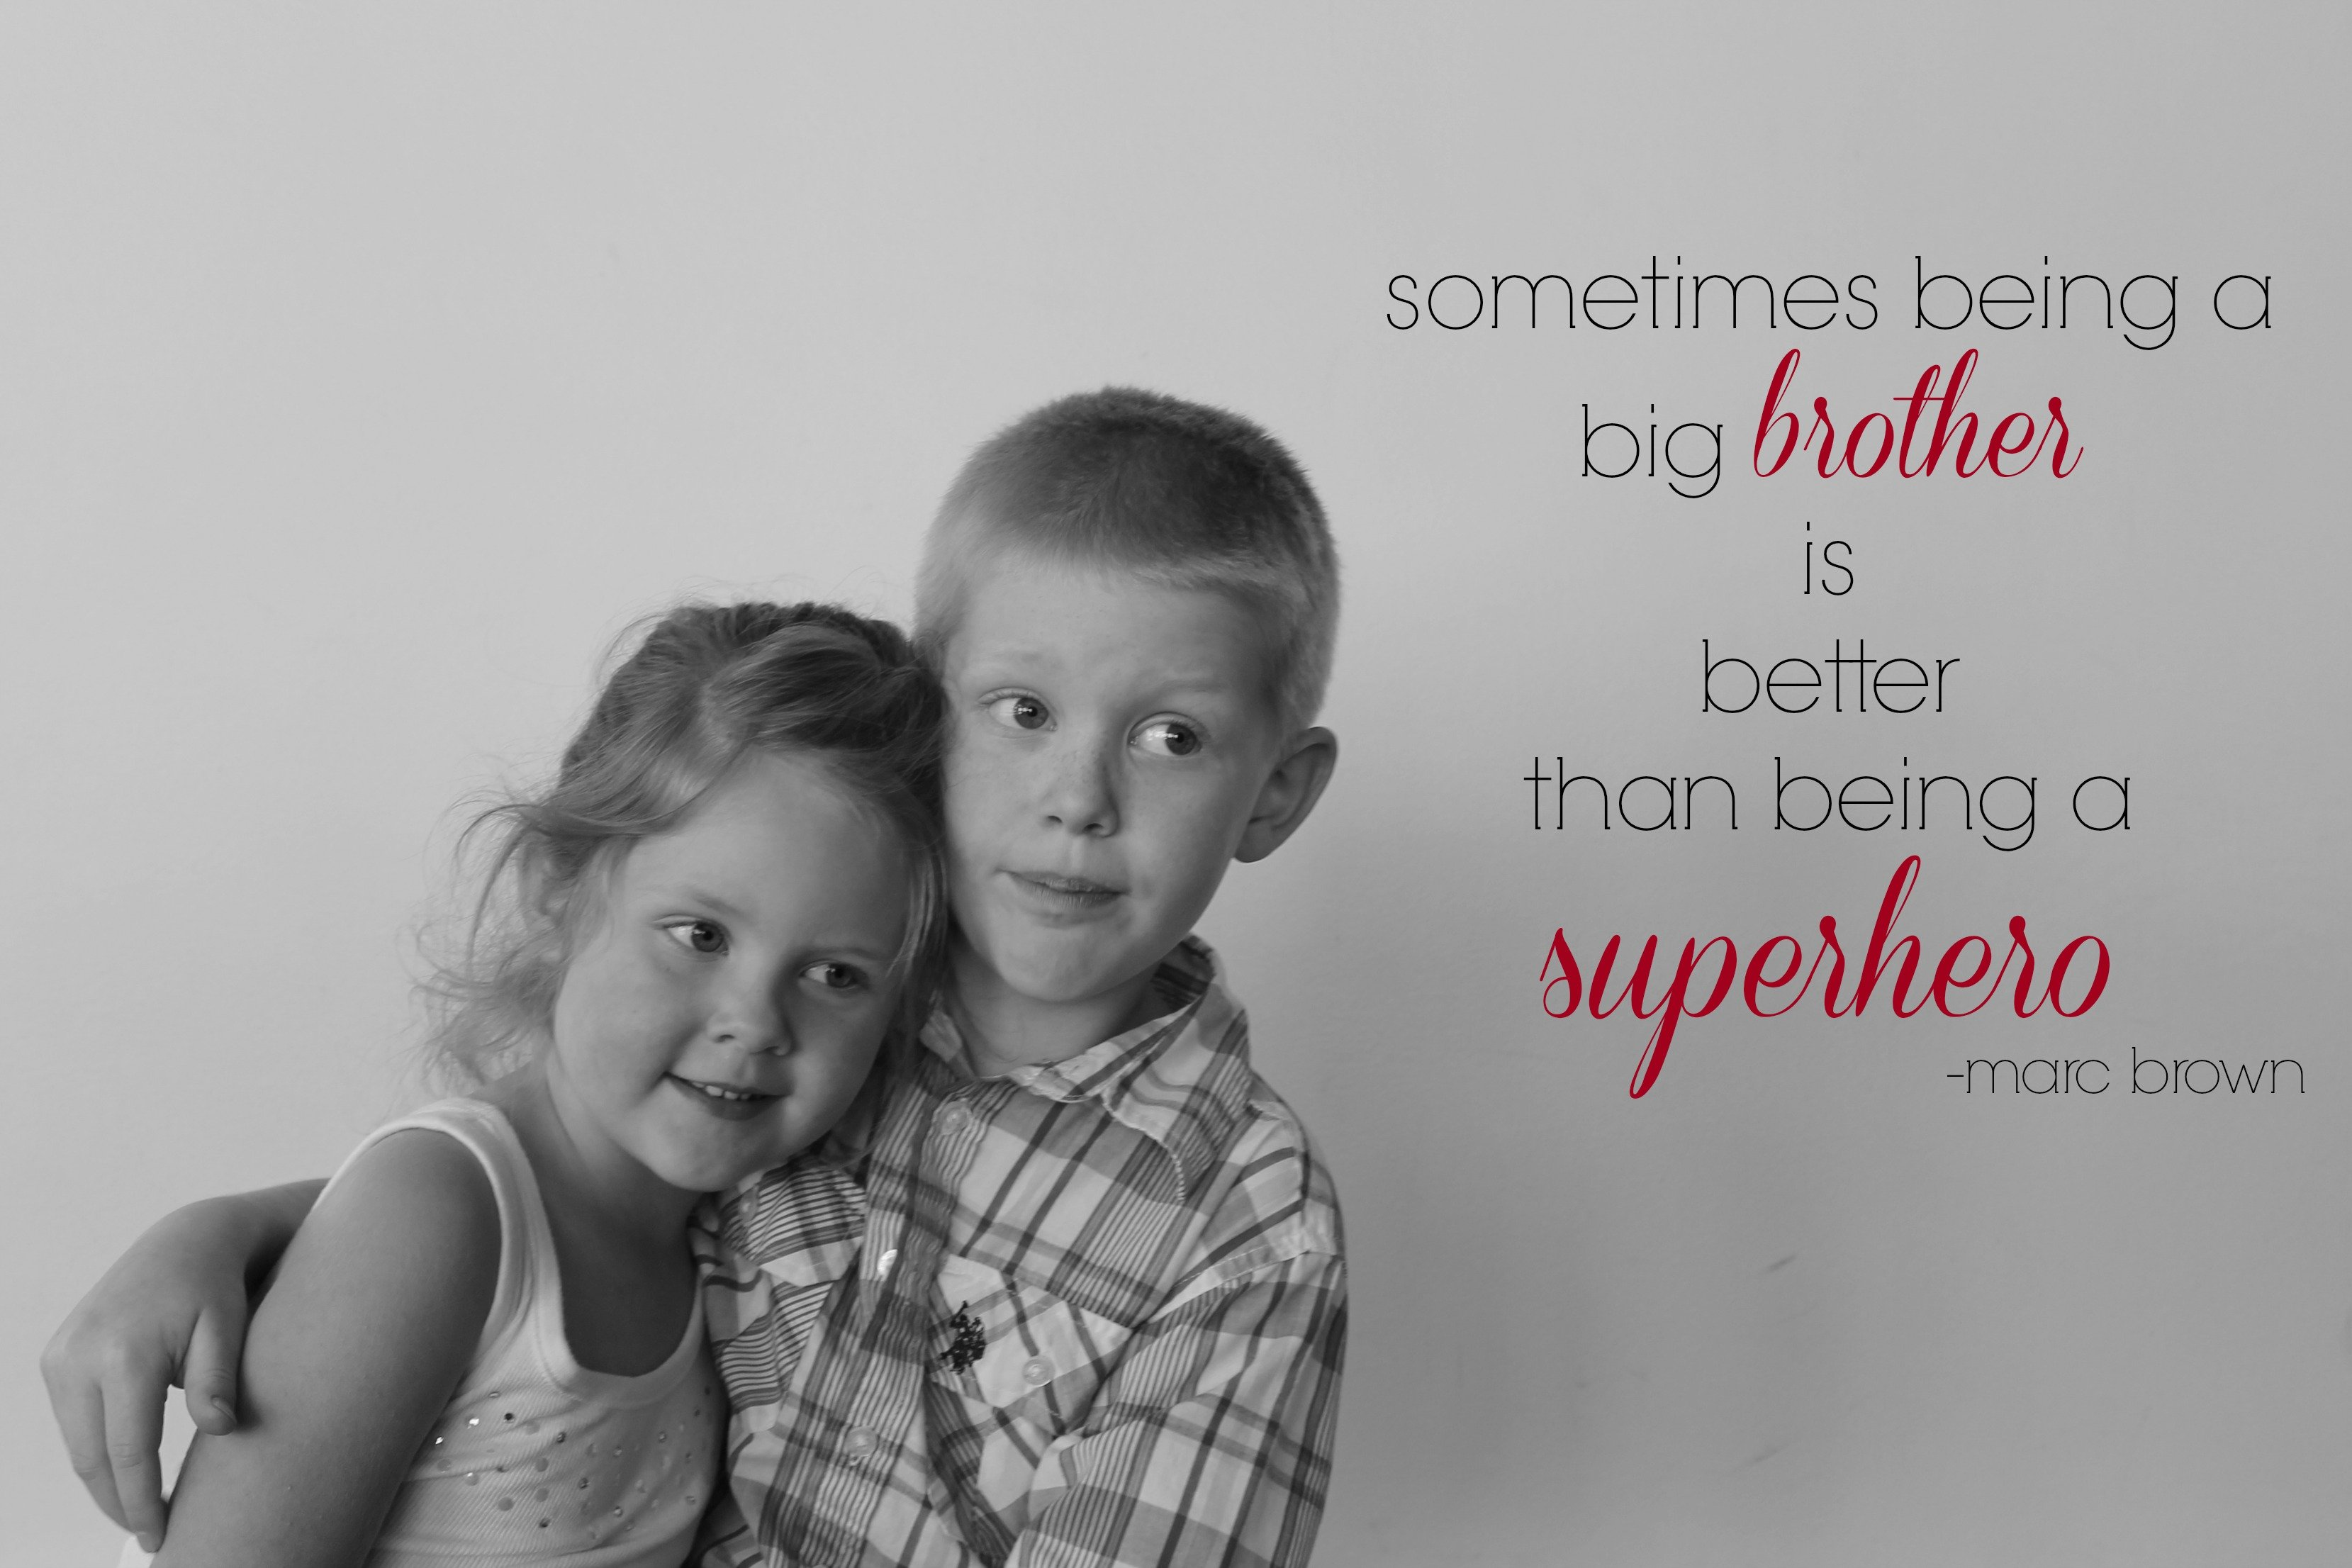 Quotes About Big Brothers And Little Sisters: Anmad Protecting Big Brother Little Sister Quotes. QuotesGram